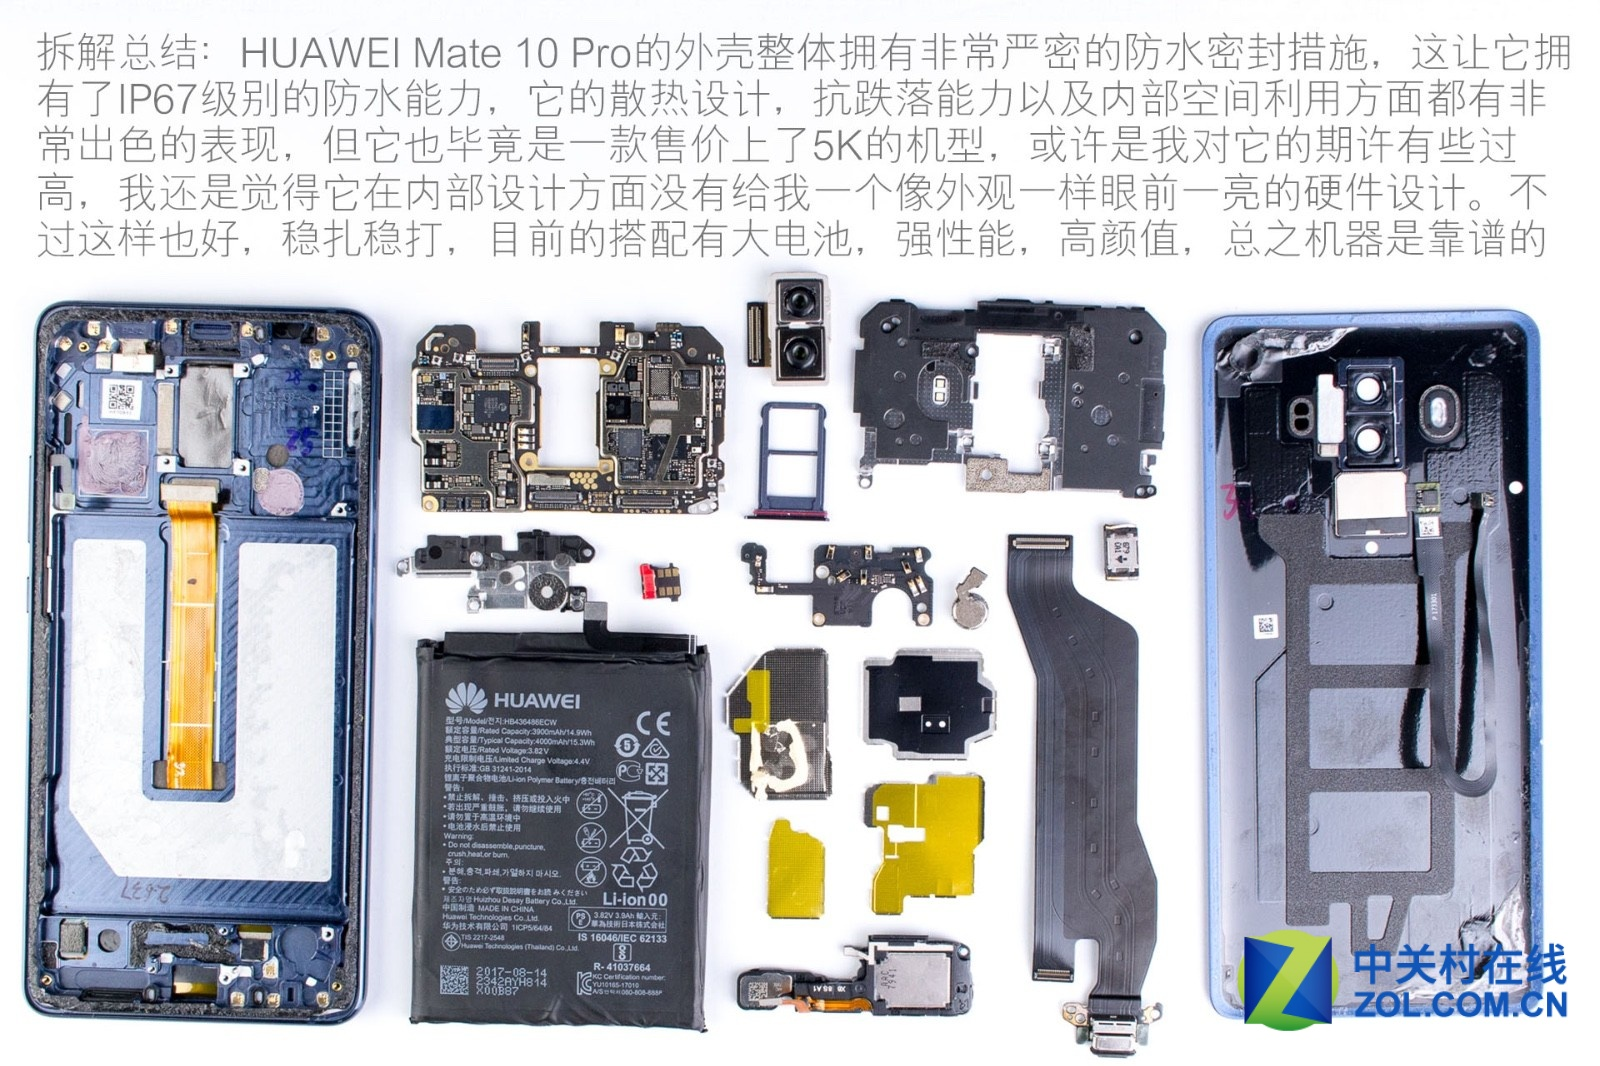 Huawei Mate 10 Pro Teardown - Laptopmain com